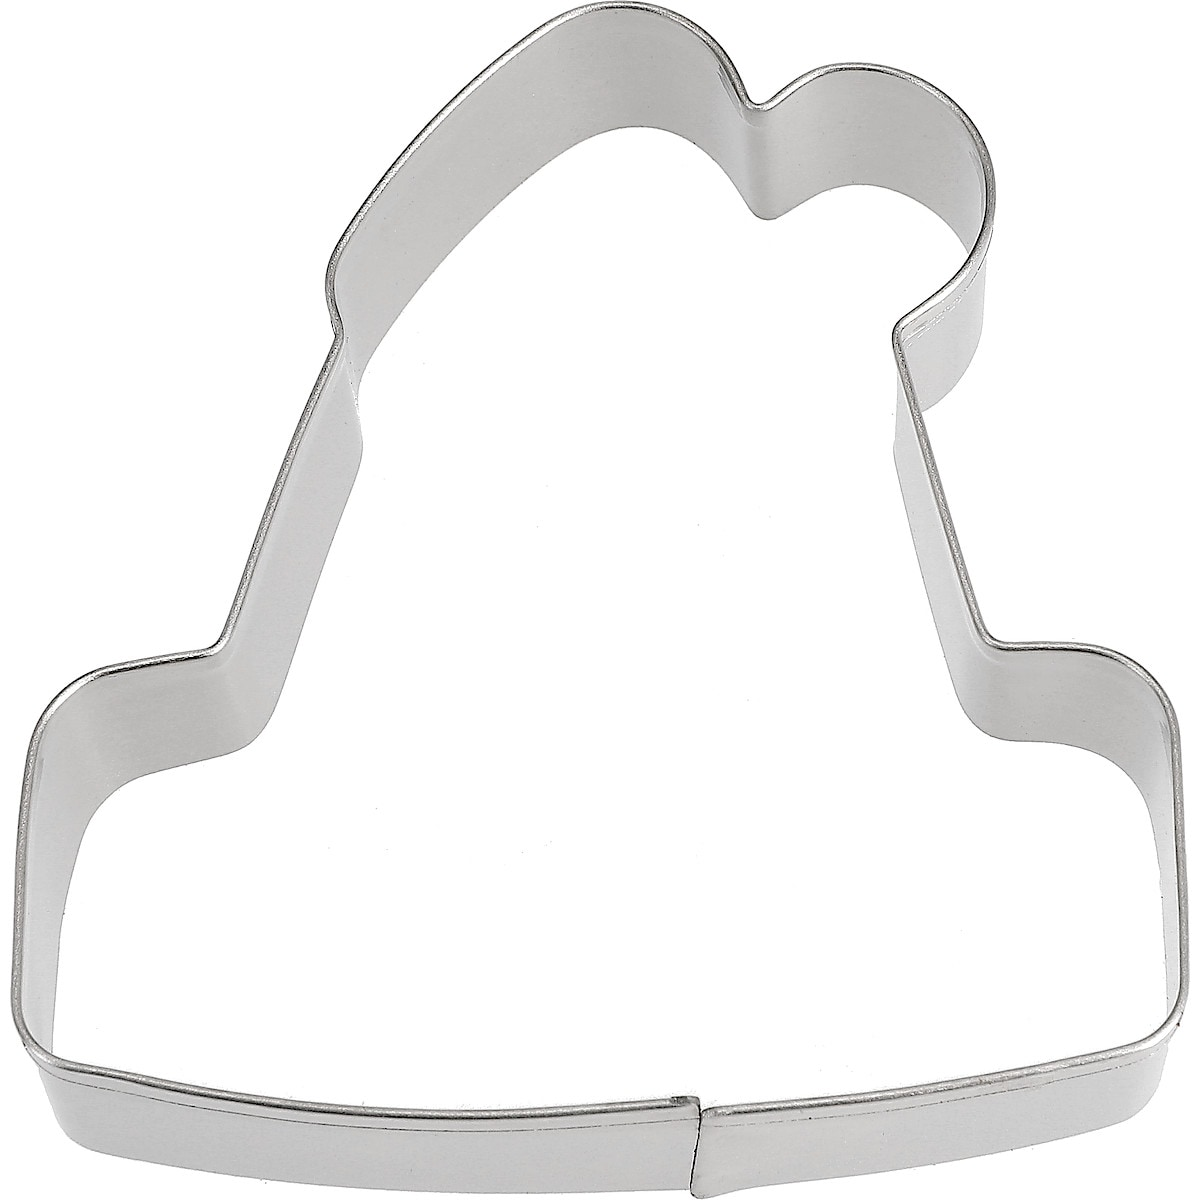 Set of 5 Gingerbread Cutters